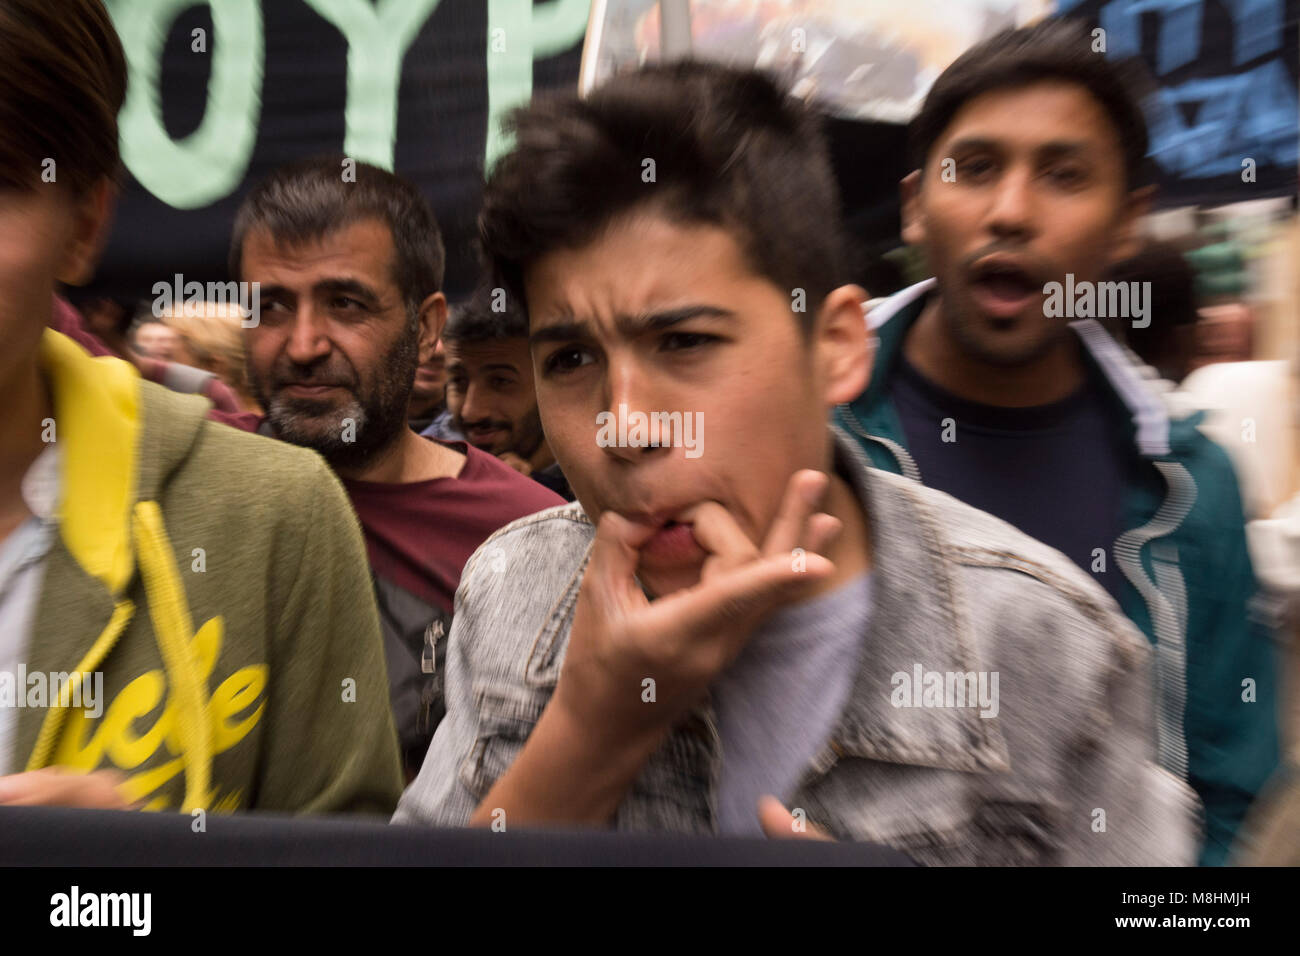 Refugees and migrants protest against EU's migration policy and demand open borders. - Stock Image